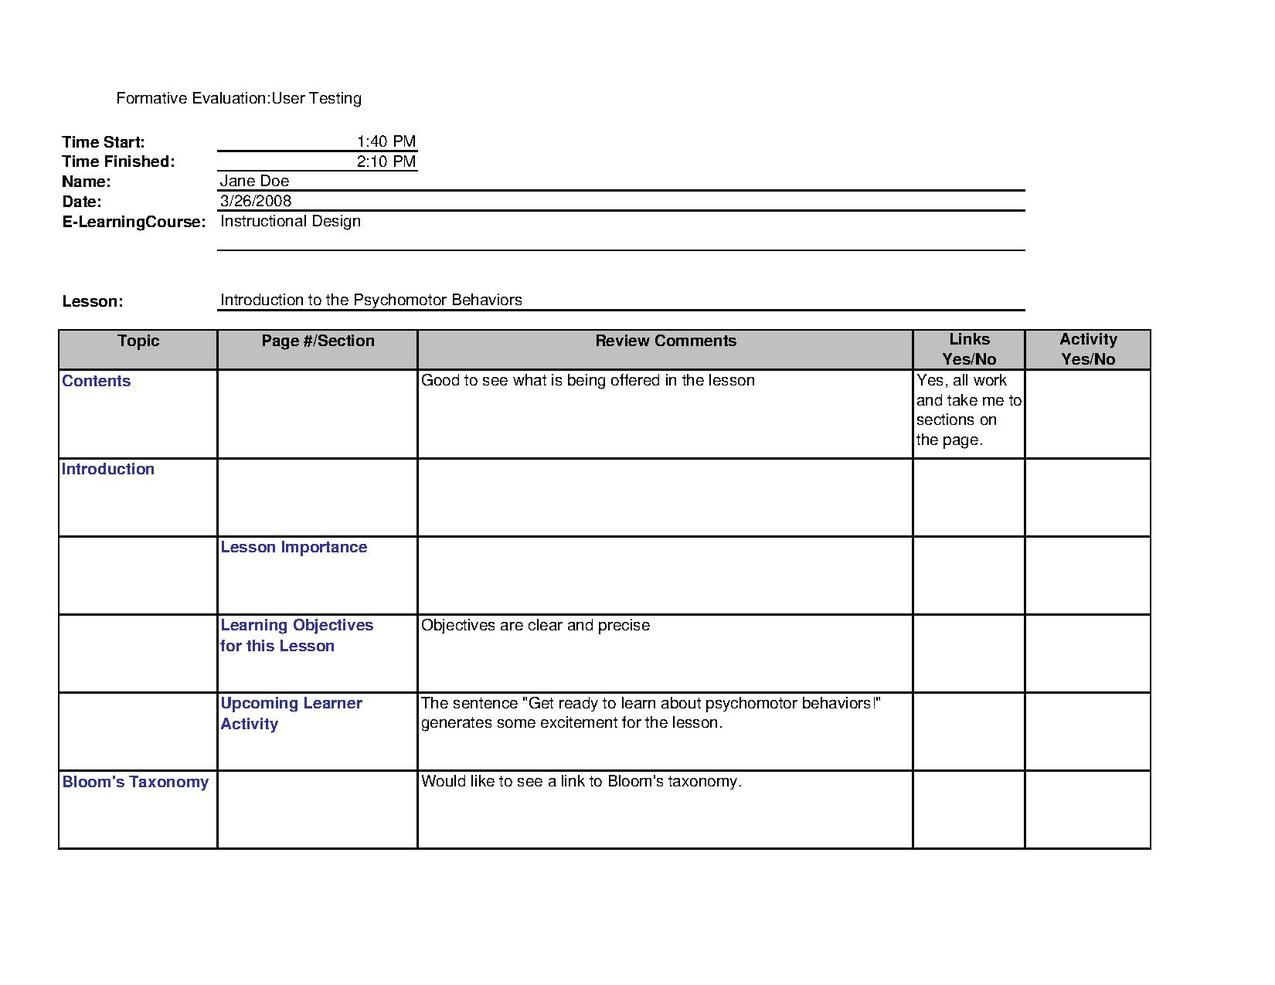 e-learning evaluation form  Instructional design/User testing of e-learning courses ...